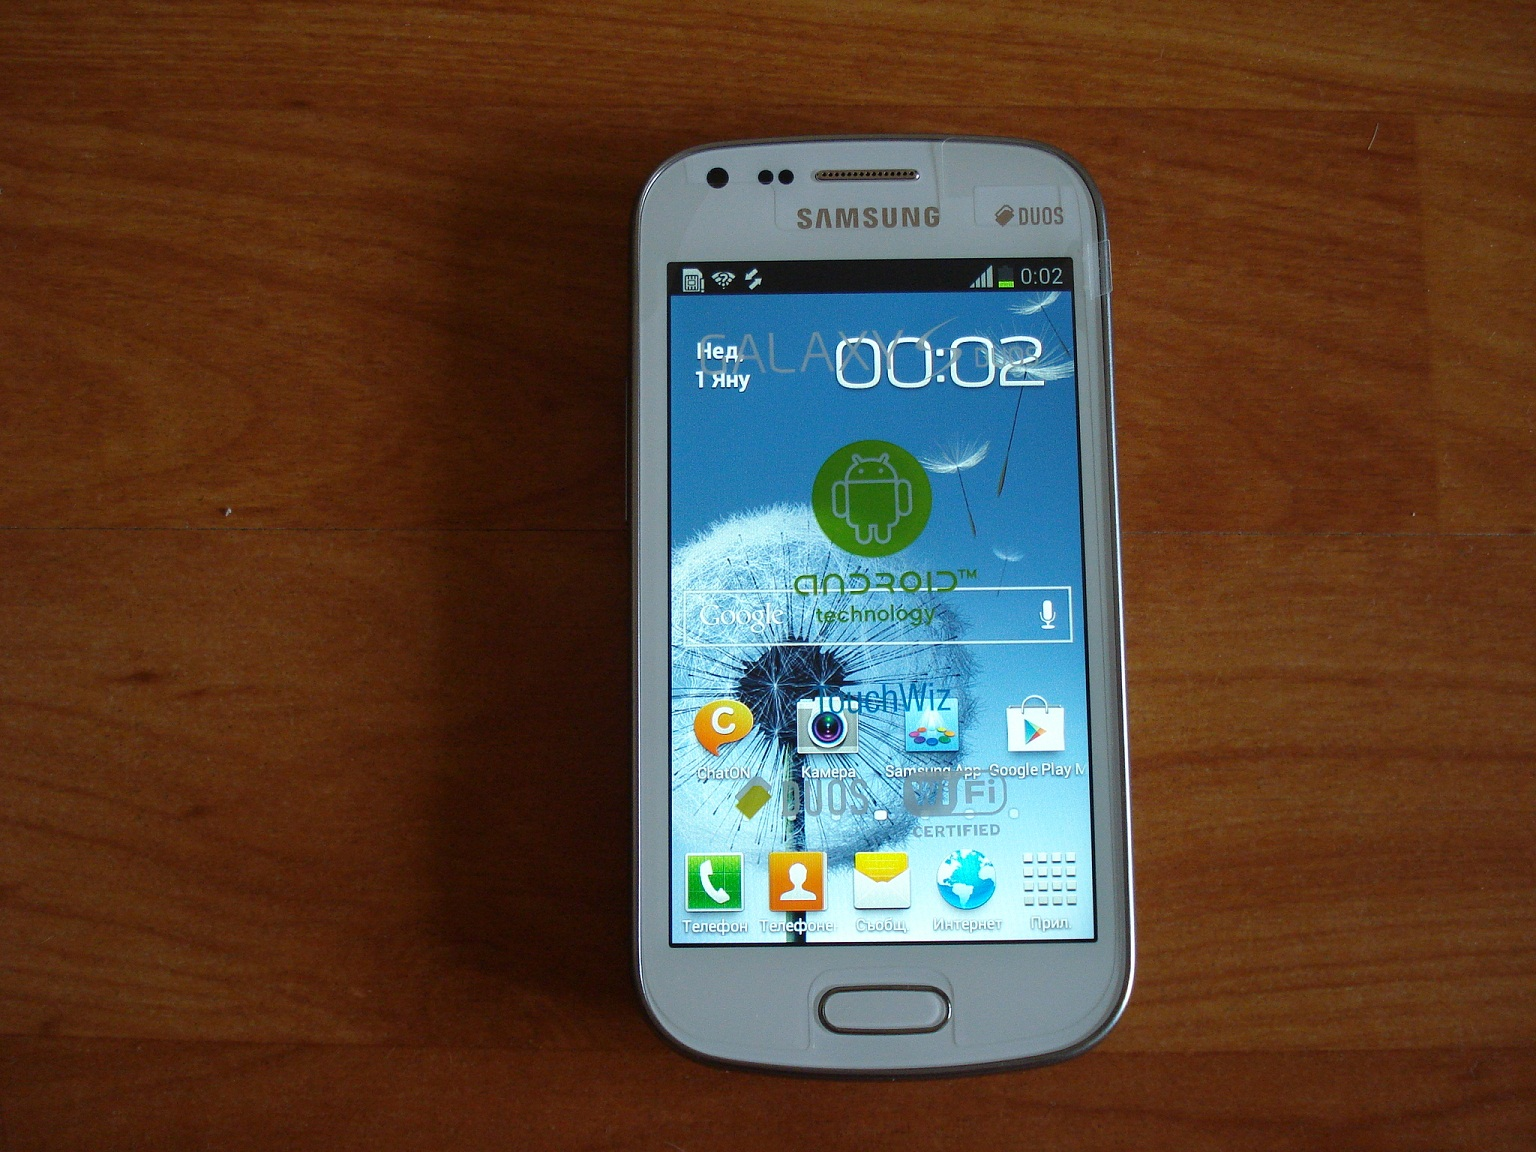 Samsung Galaxy S Duos S7562 Dual-SIM Android smartphone | Test and ...